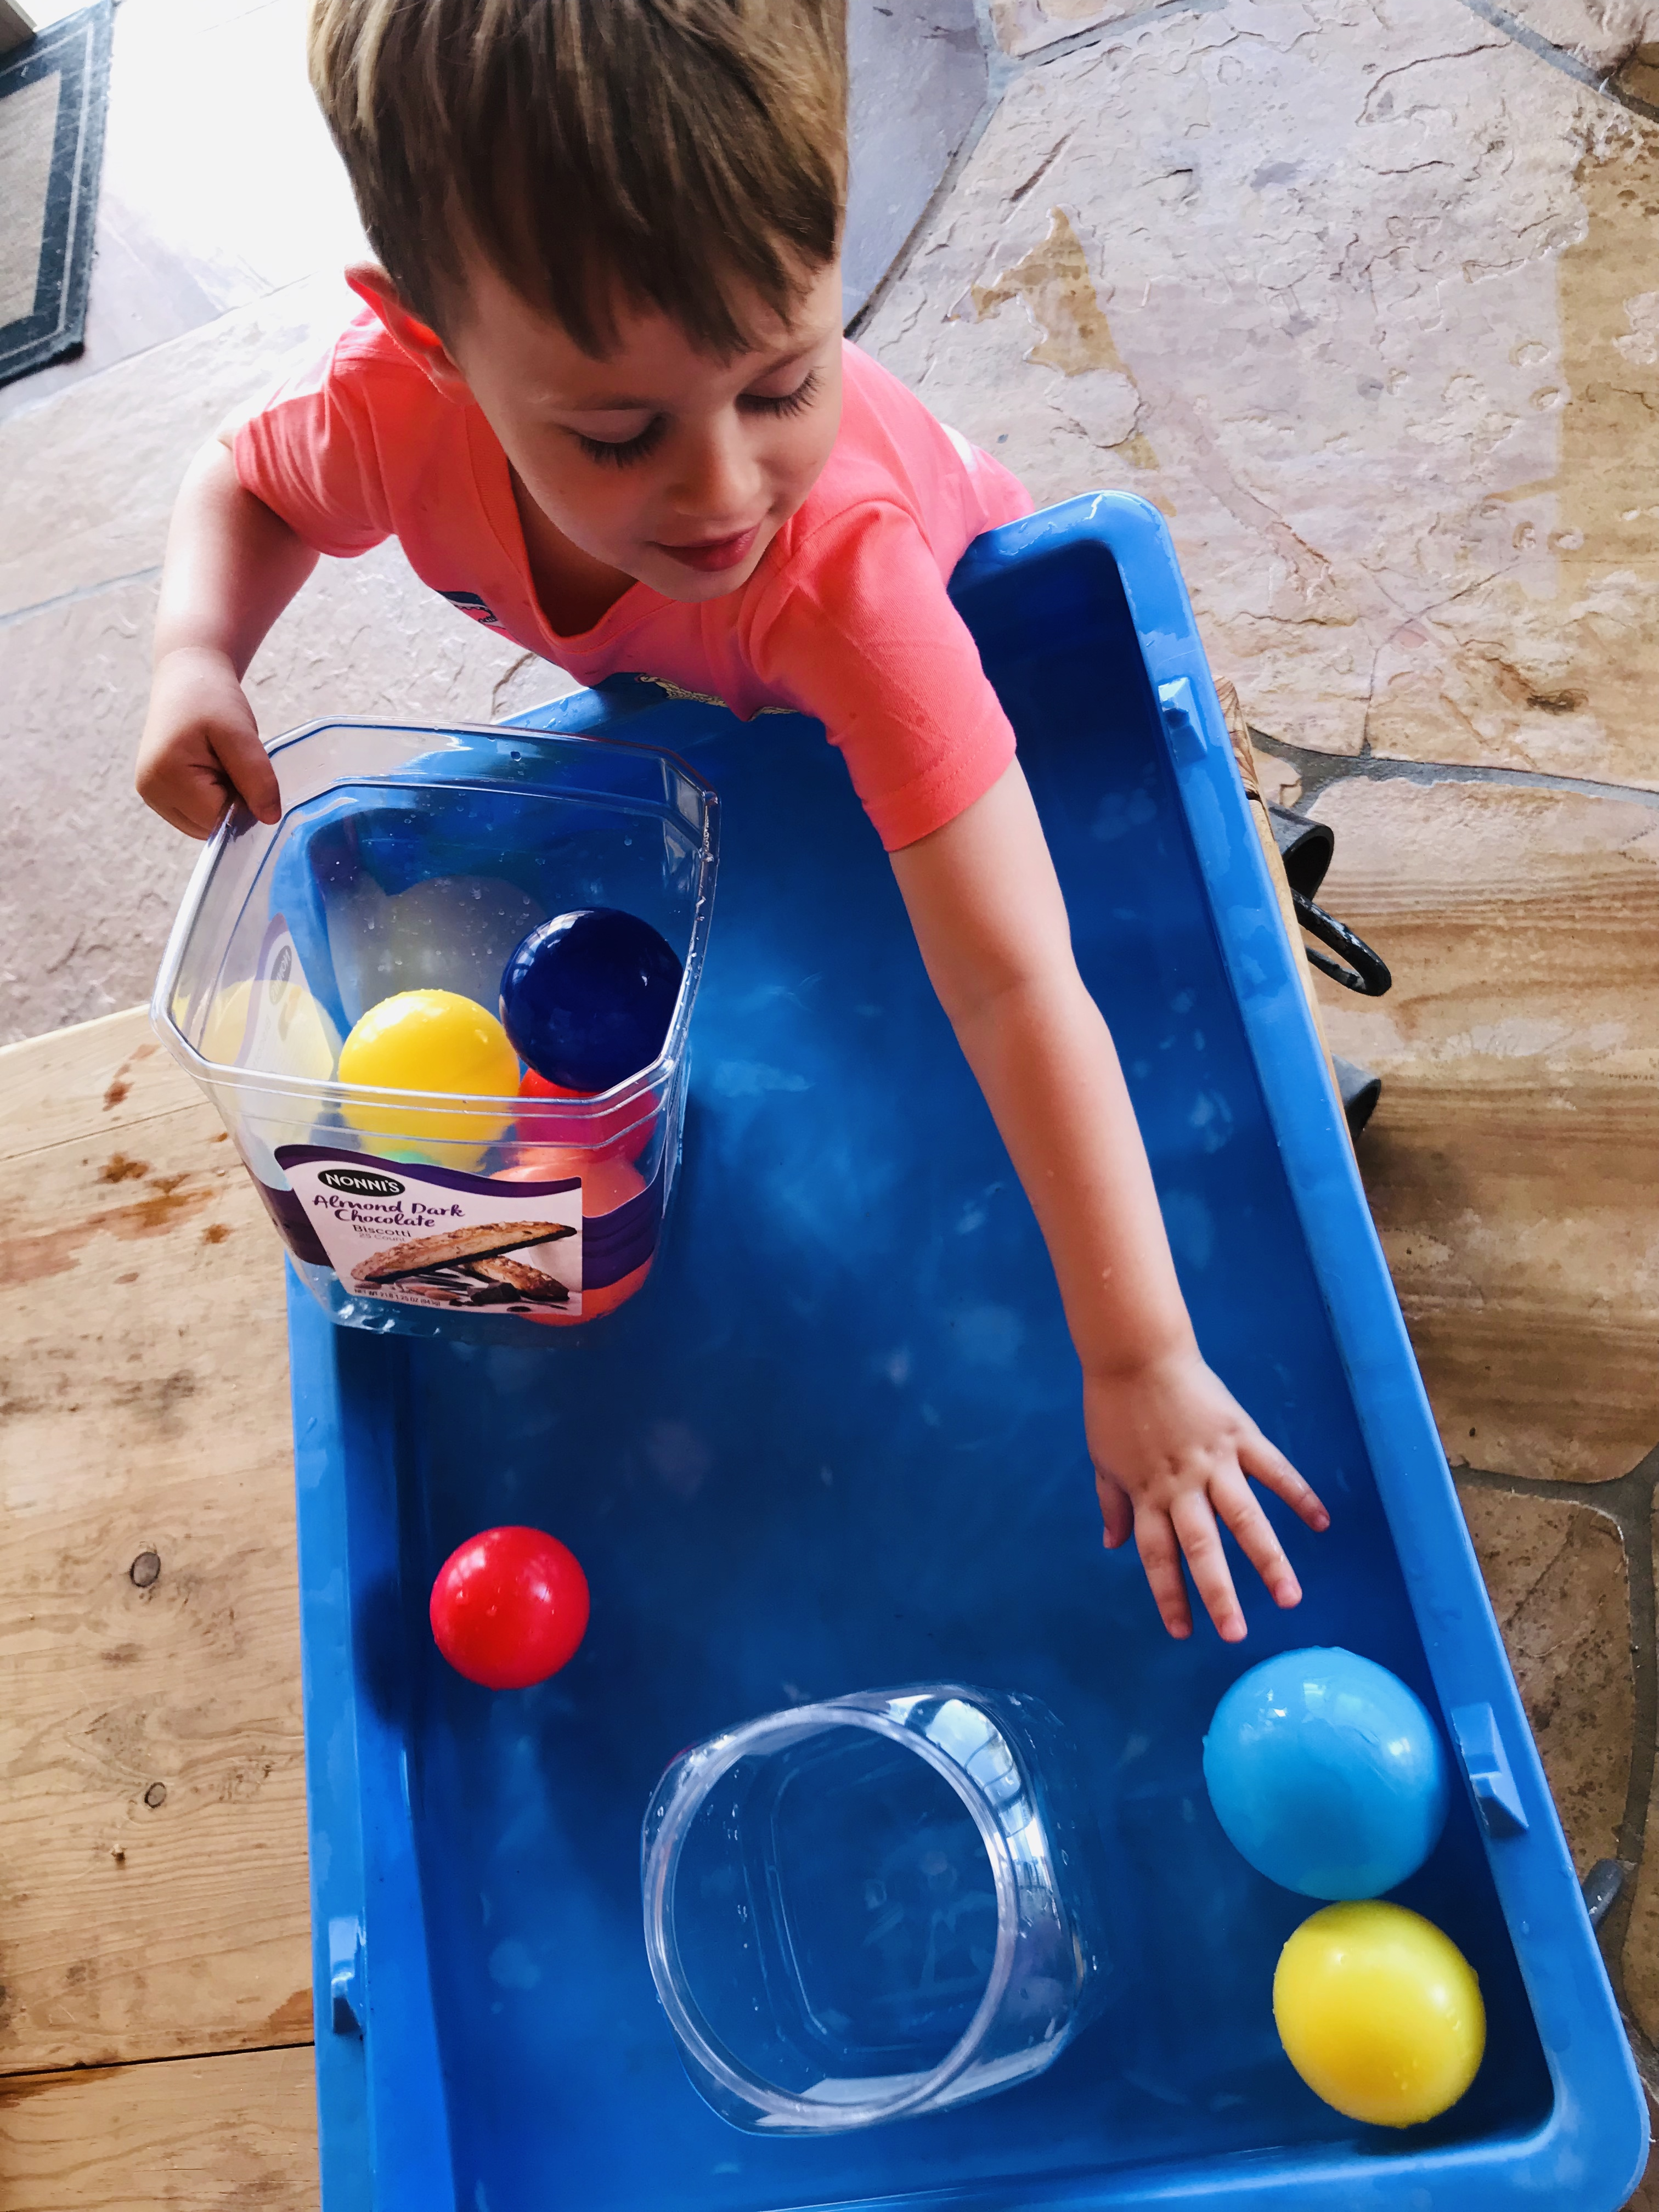 Kid playing with plastic balls in container